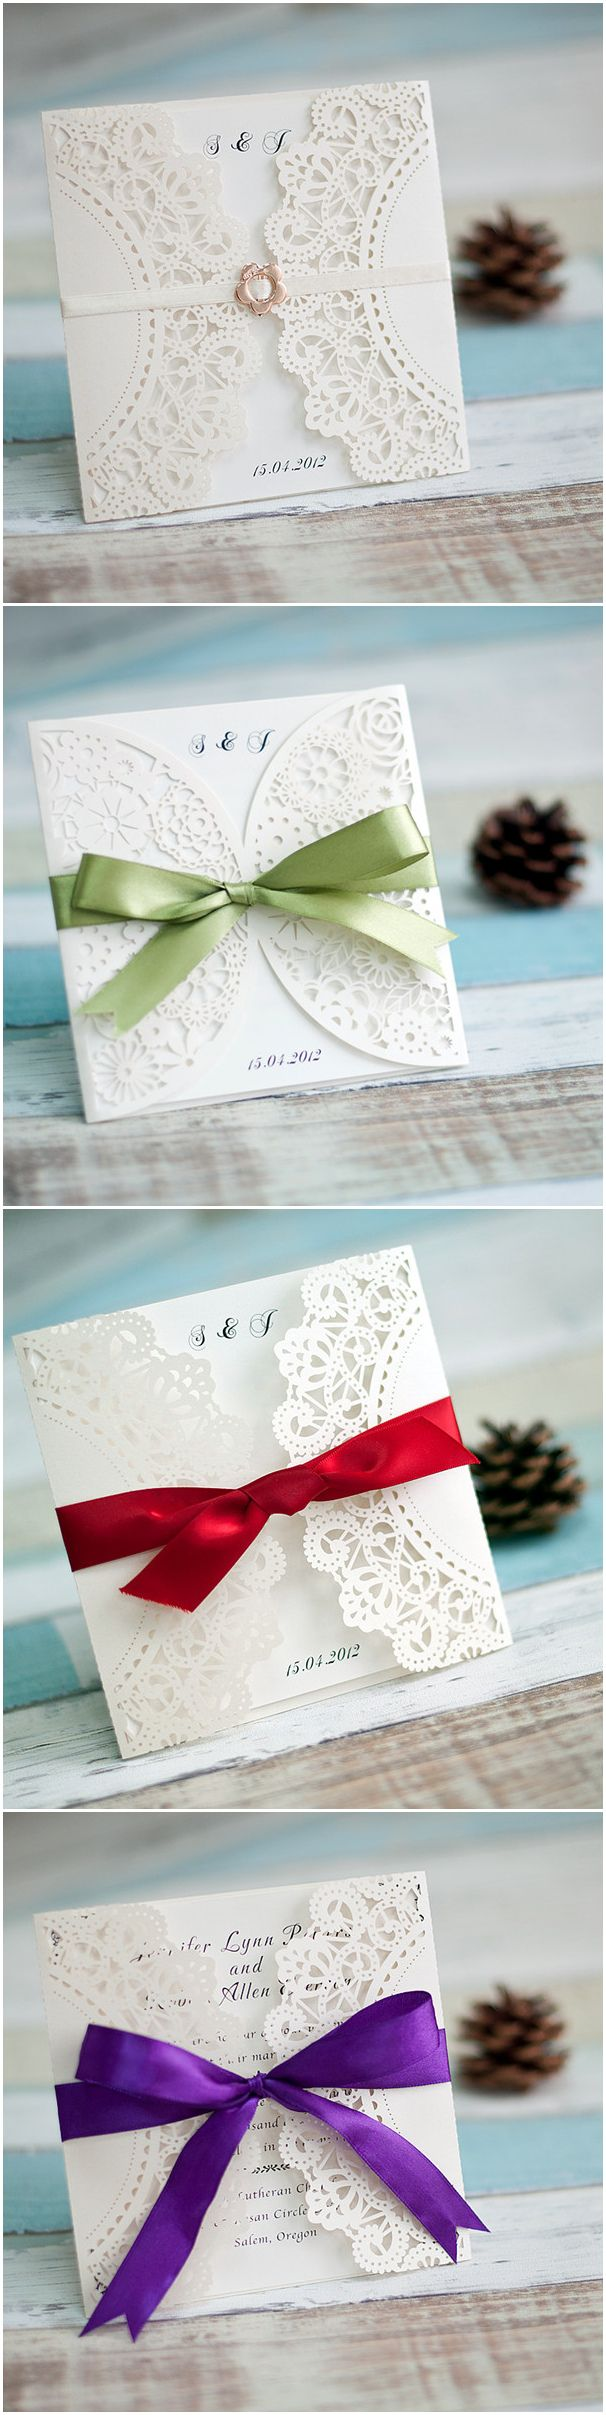 Enjoy 10 Off On Lace Inspired Wedding Invitations